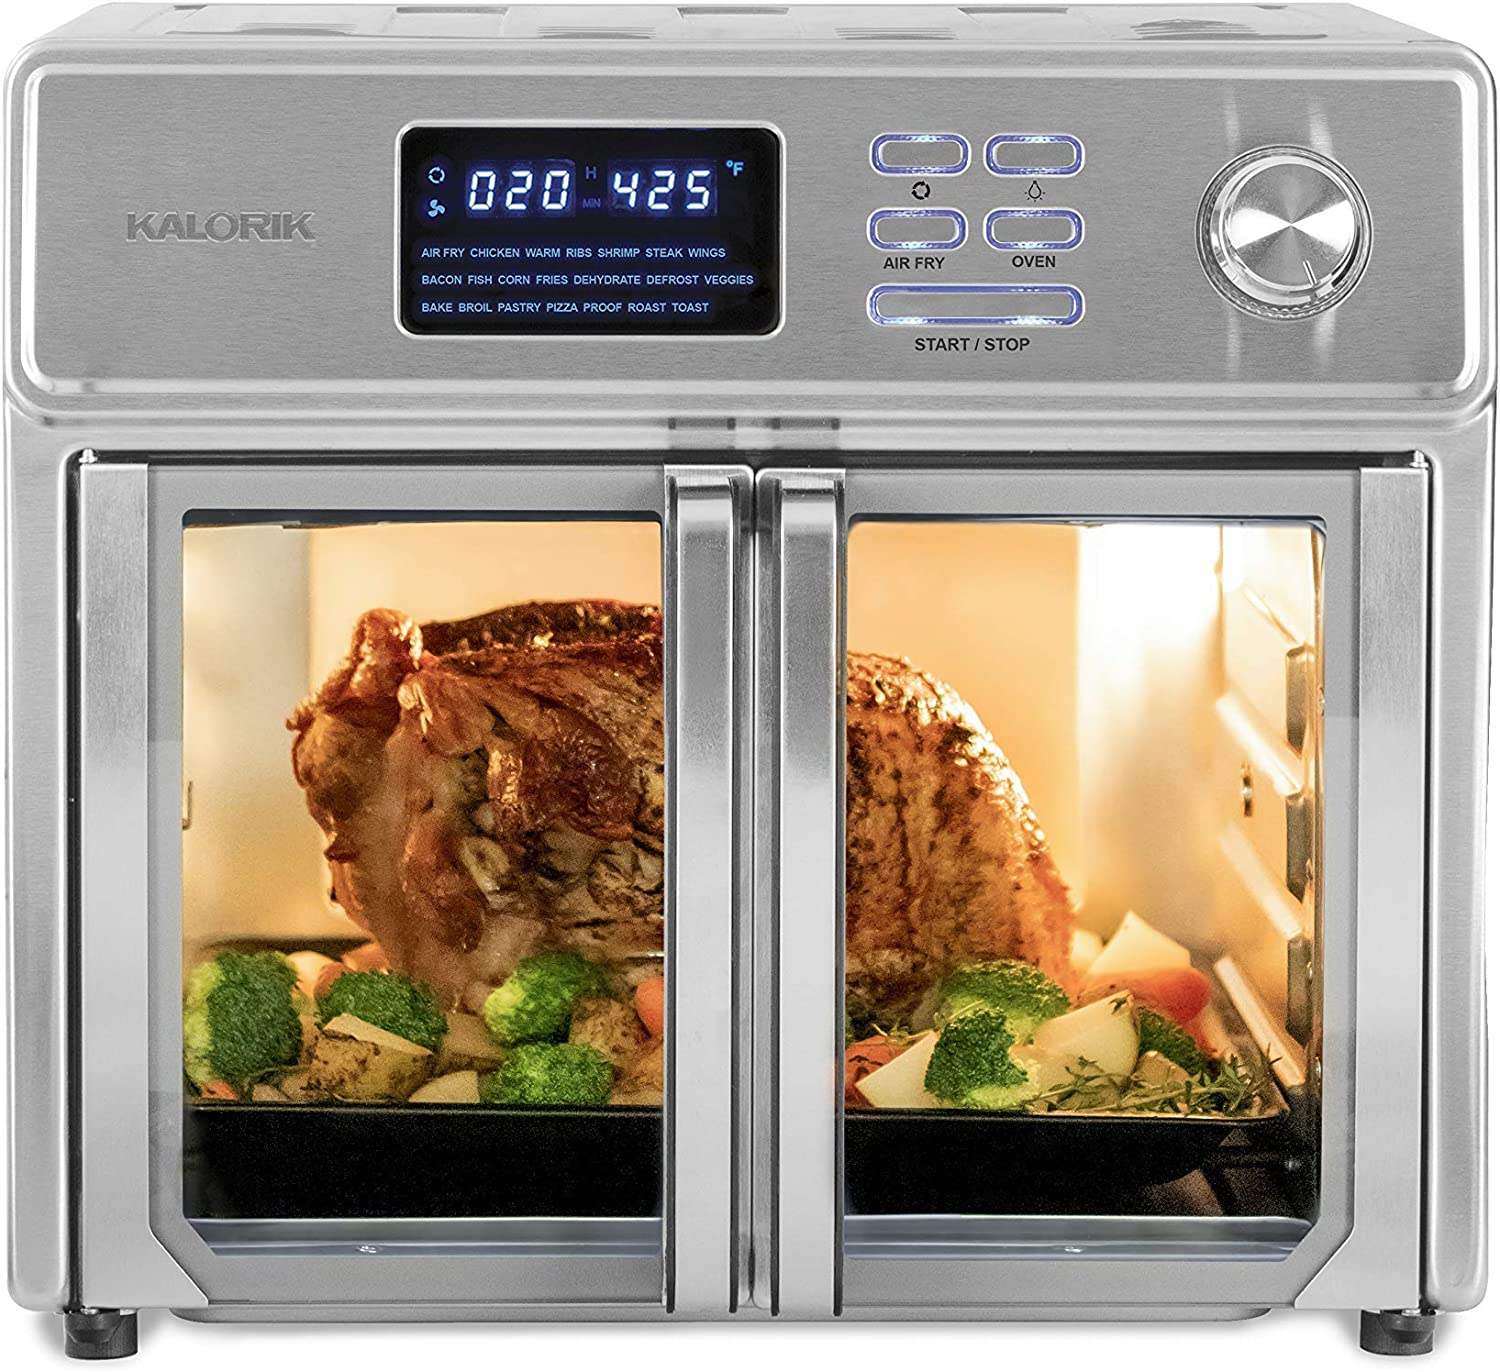 Kalorik 26 QT Digital Maxx Air Fryer Oven with 9 Accessories, Roaster, Broiler, Rotisserie, Dehydrator, Oven, Toaster, Pizza Oven and Slow Cooker. Includes Cookbook. Sears up to 500⁰F. Extra Large Capacity, All in One Appliance. Stainless Steel. AFO 46045 SS (Renewed)